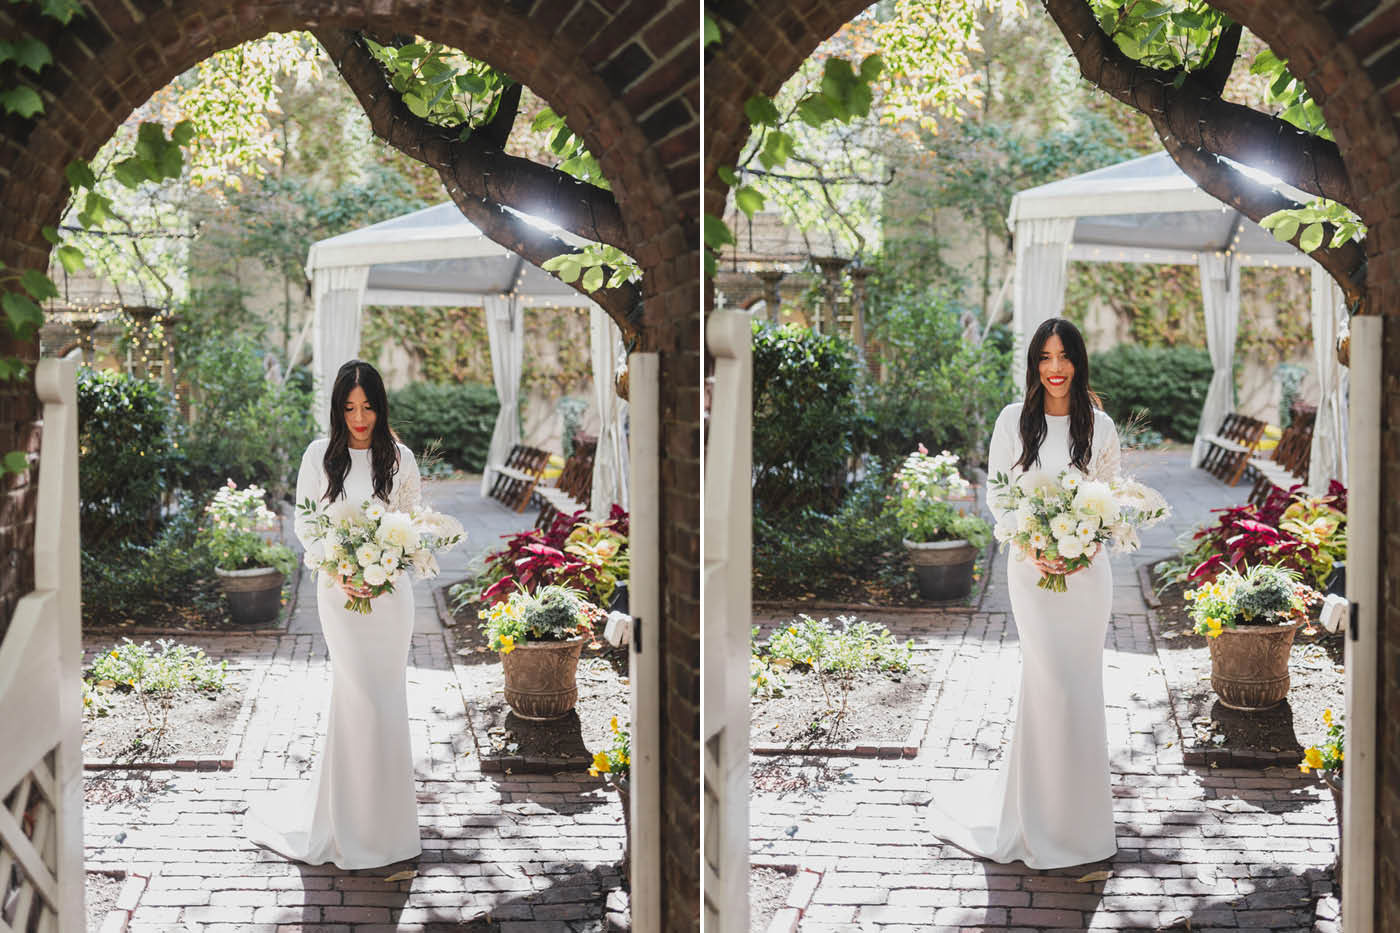 Bridal portraits at Morris House Hotel by Weddings by Hanel